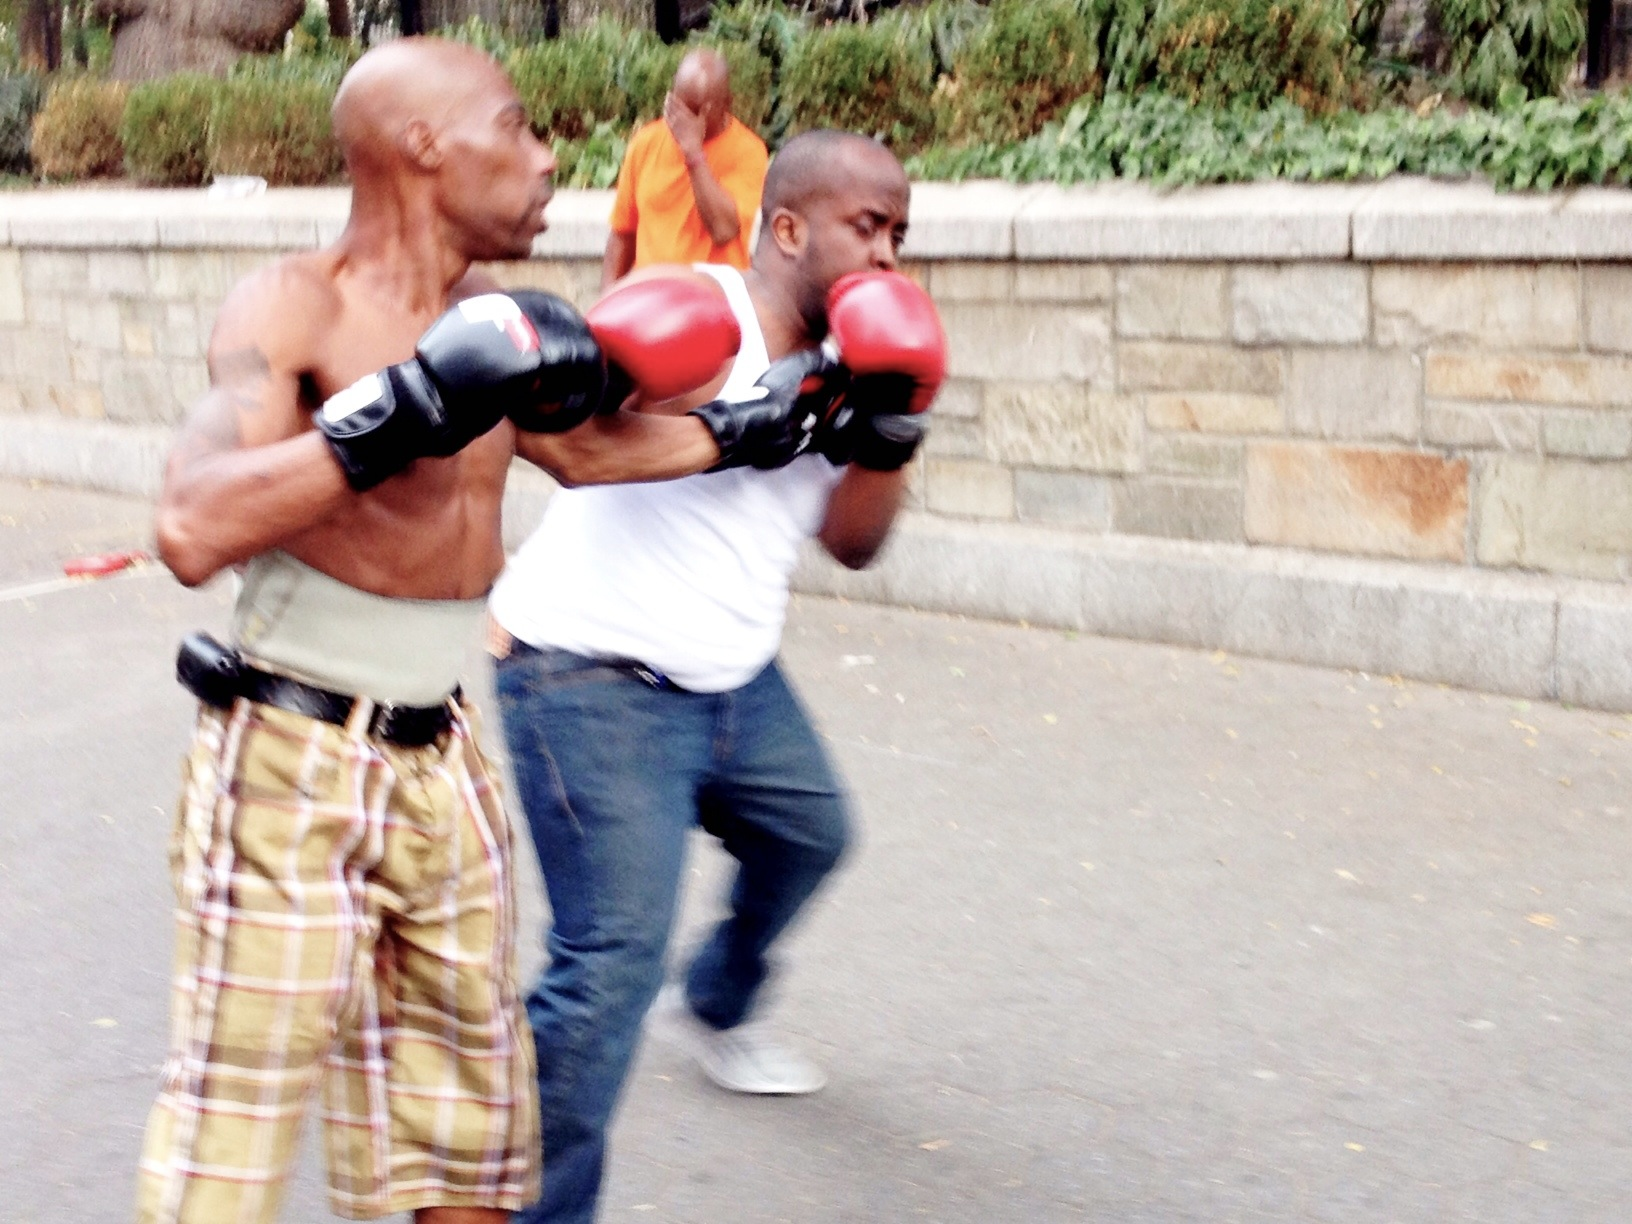 union_square_fight_1